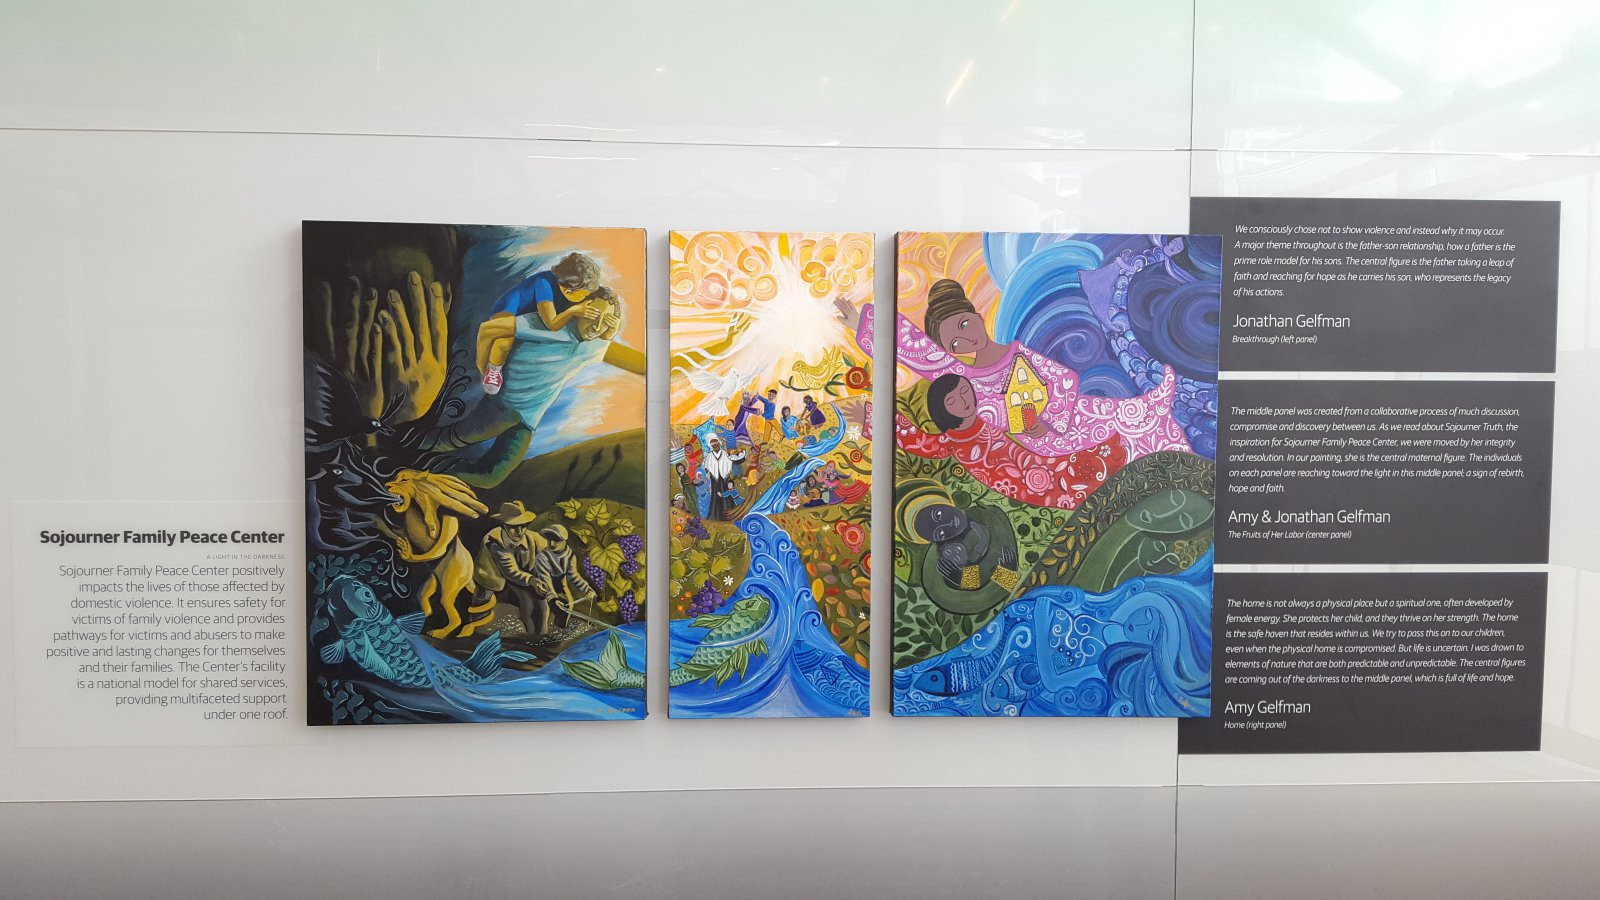 Triptych by Jonathan and Amy Gelfman